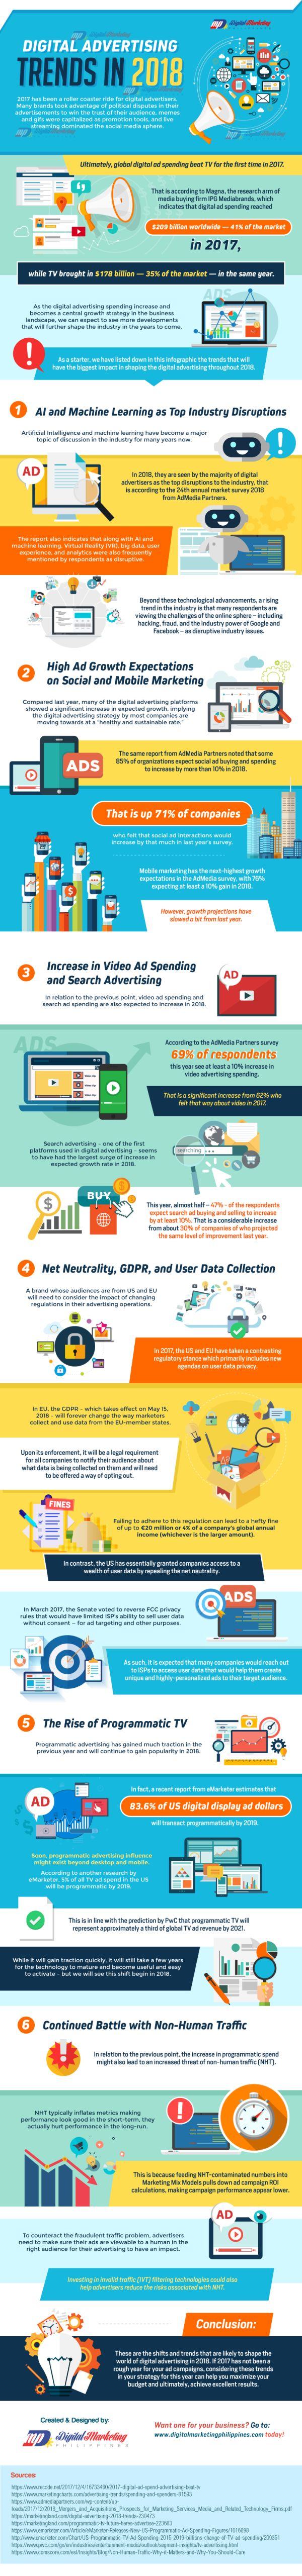 Digital Advertising Trends Infographic